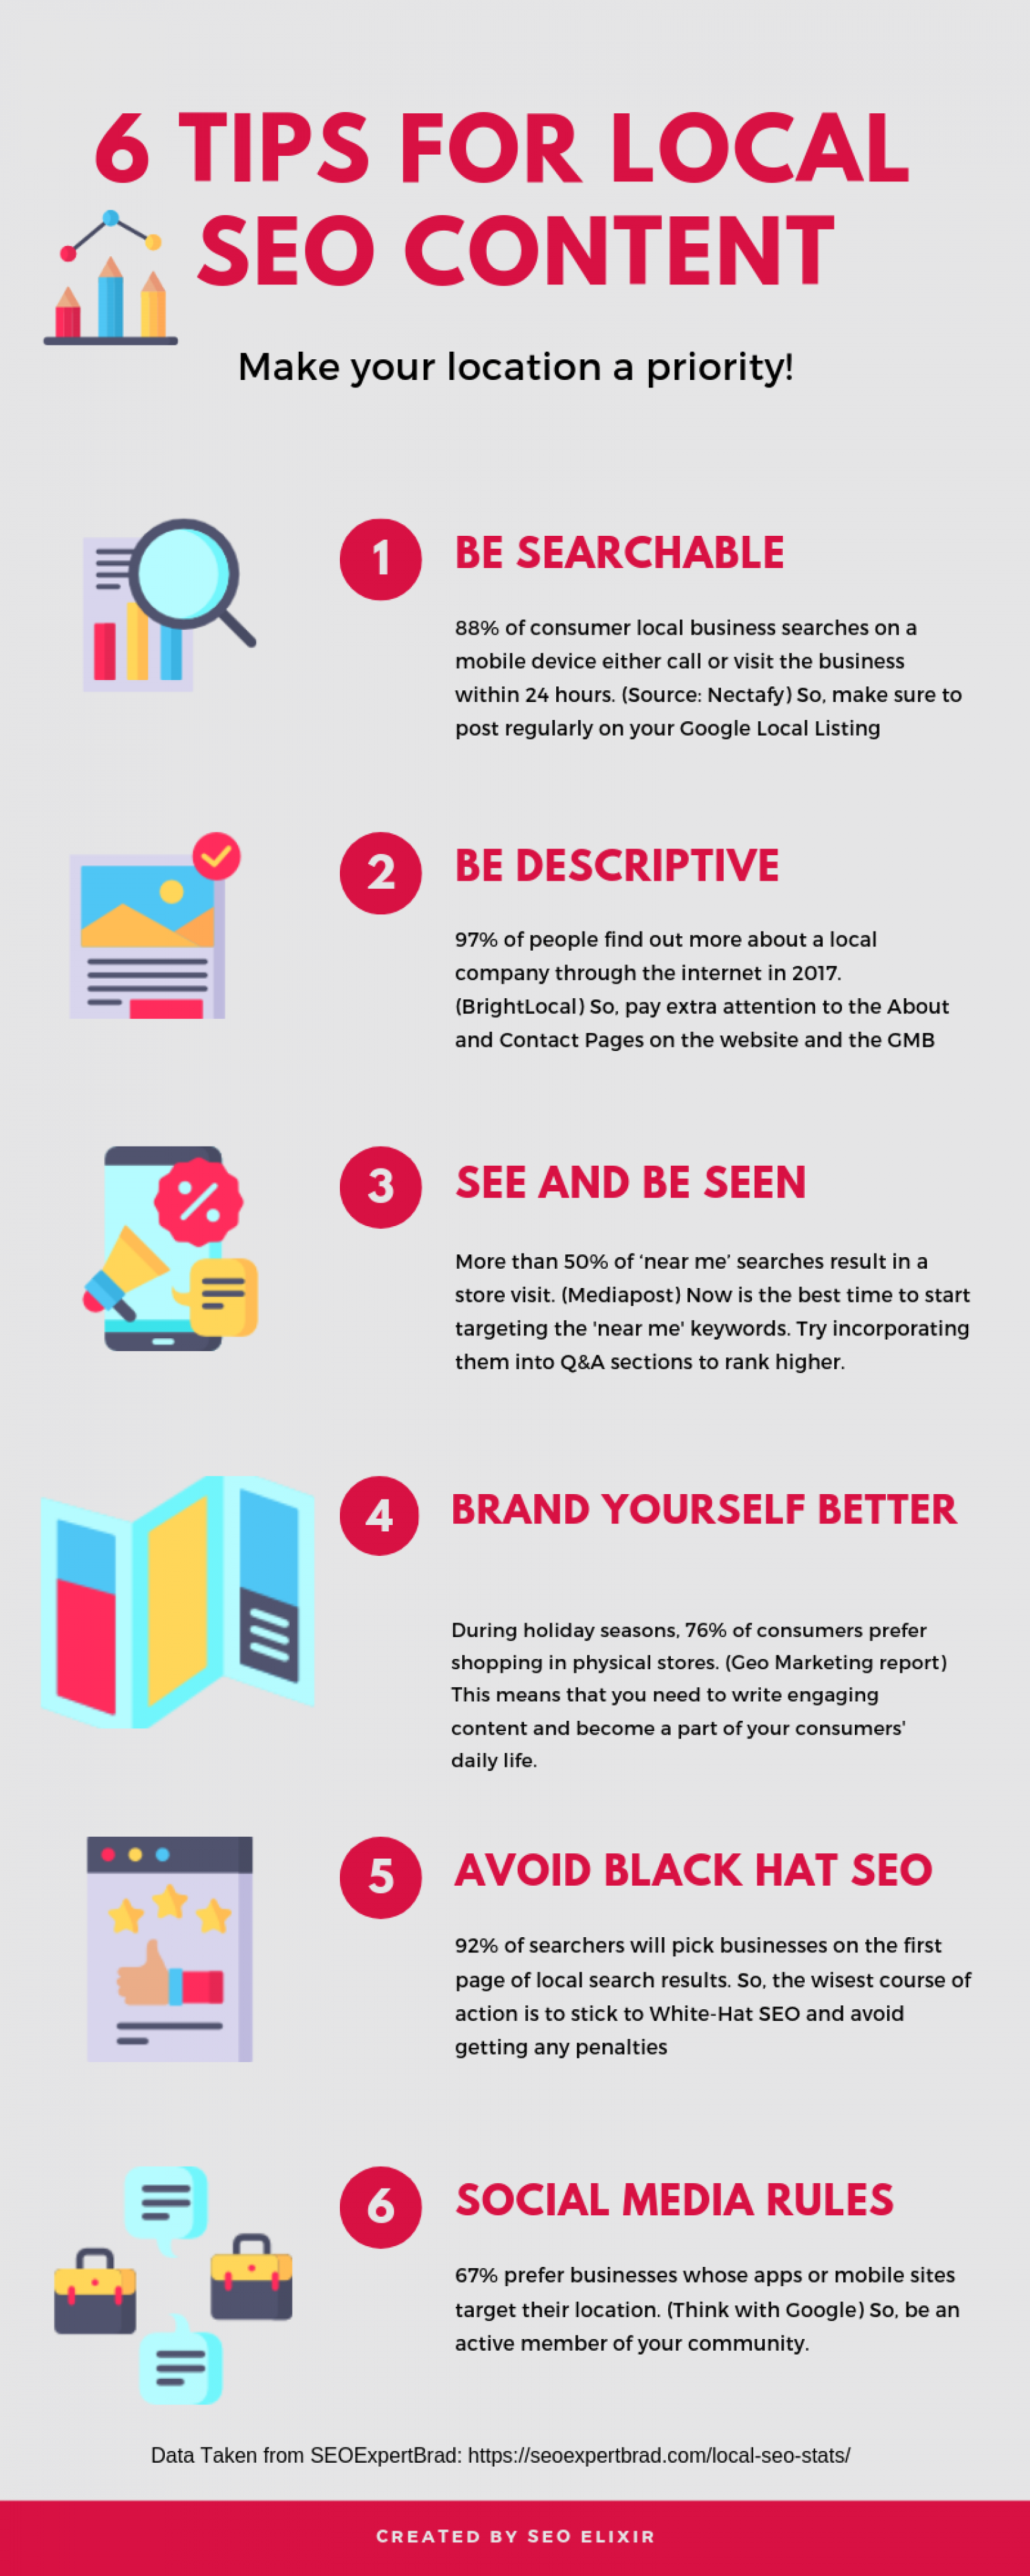 6 Tips for Local SEO Content Infographic